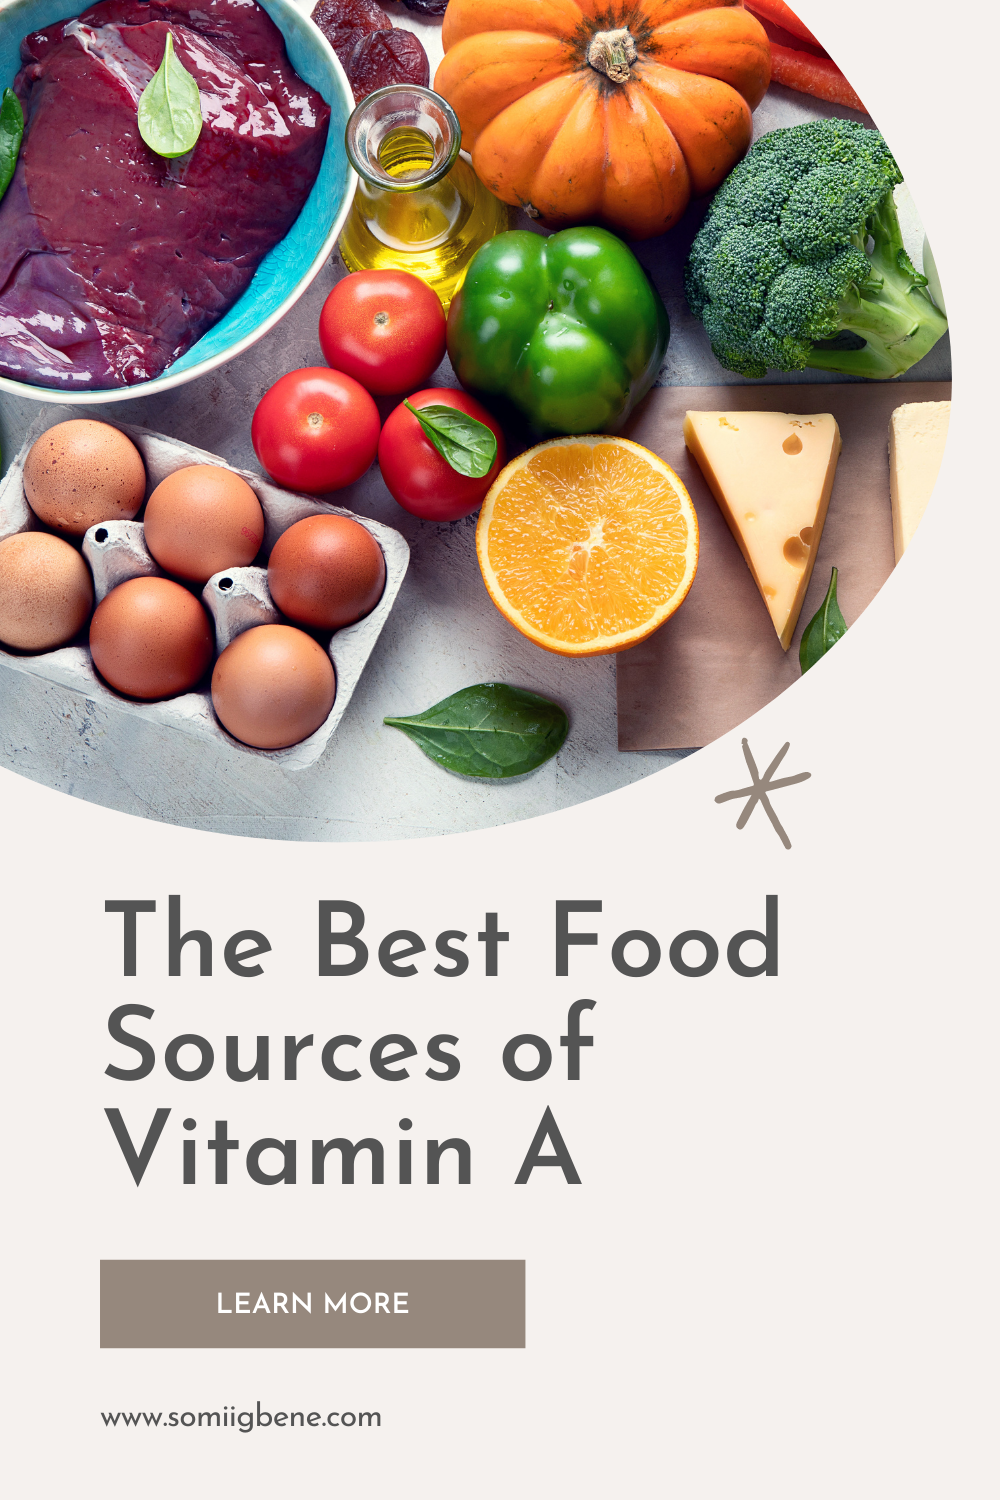 the best food sources of vitamin A